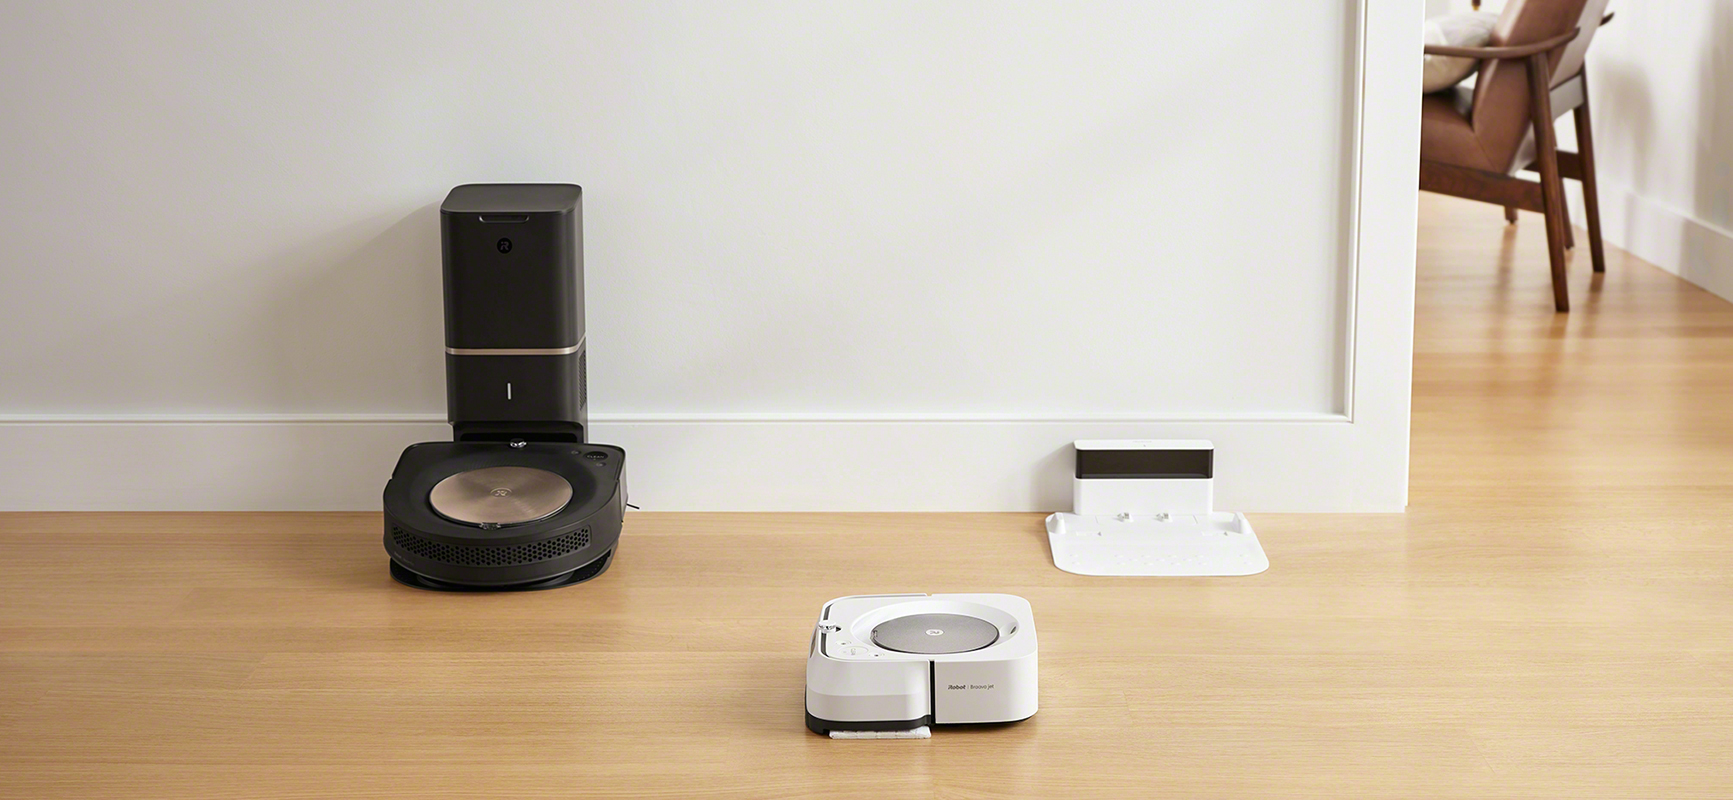 iRobot's Roomba s9 and Braava m6 teaming